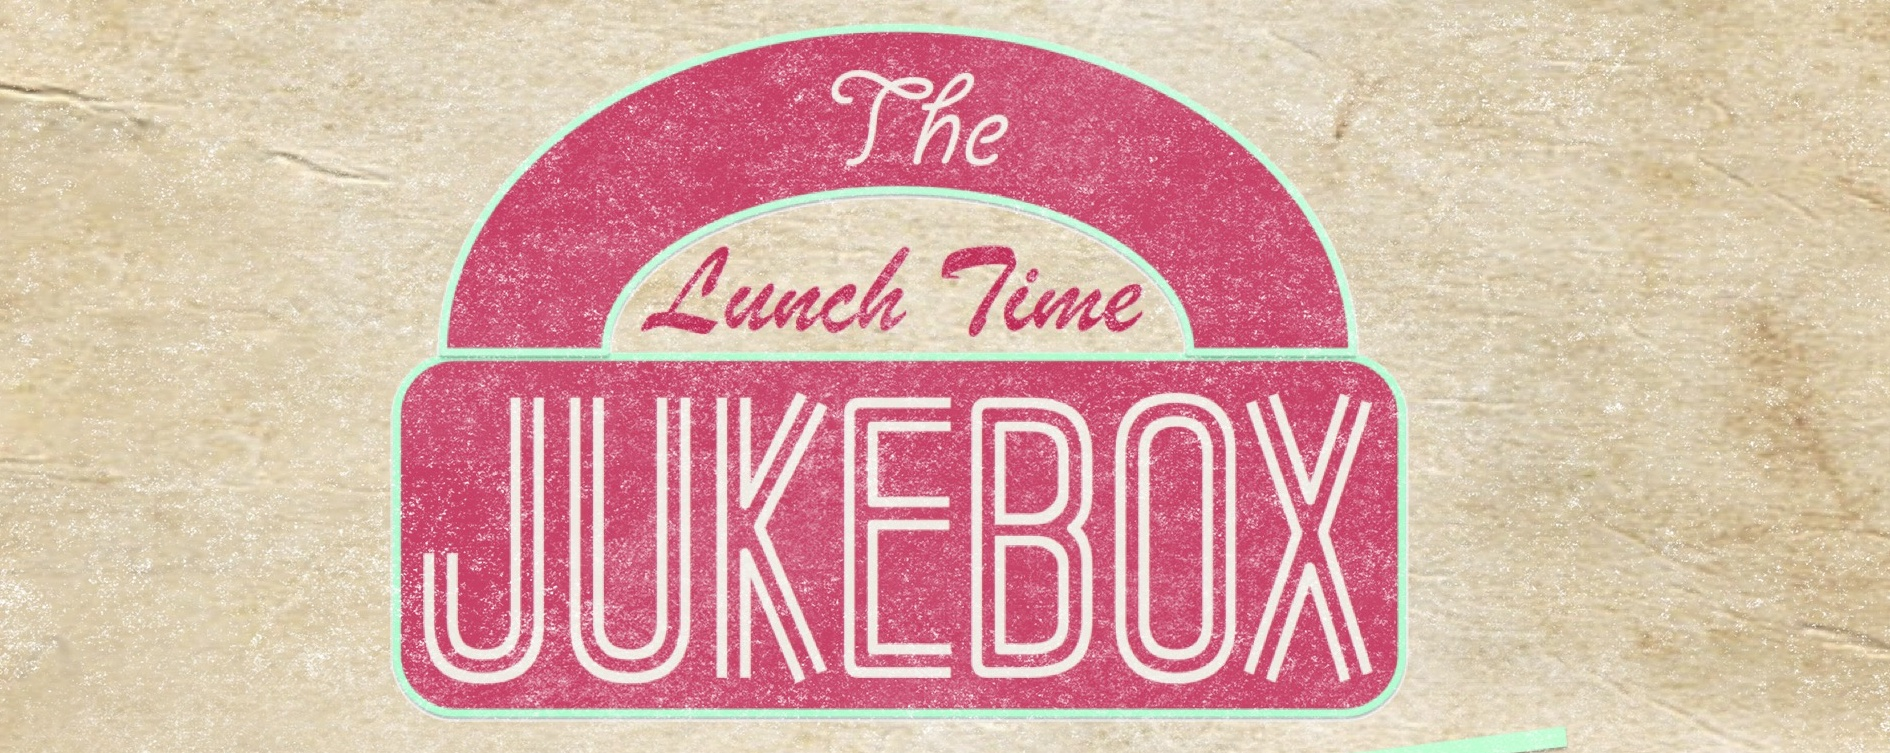 The Lunchtime Jukebox I